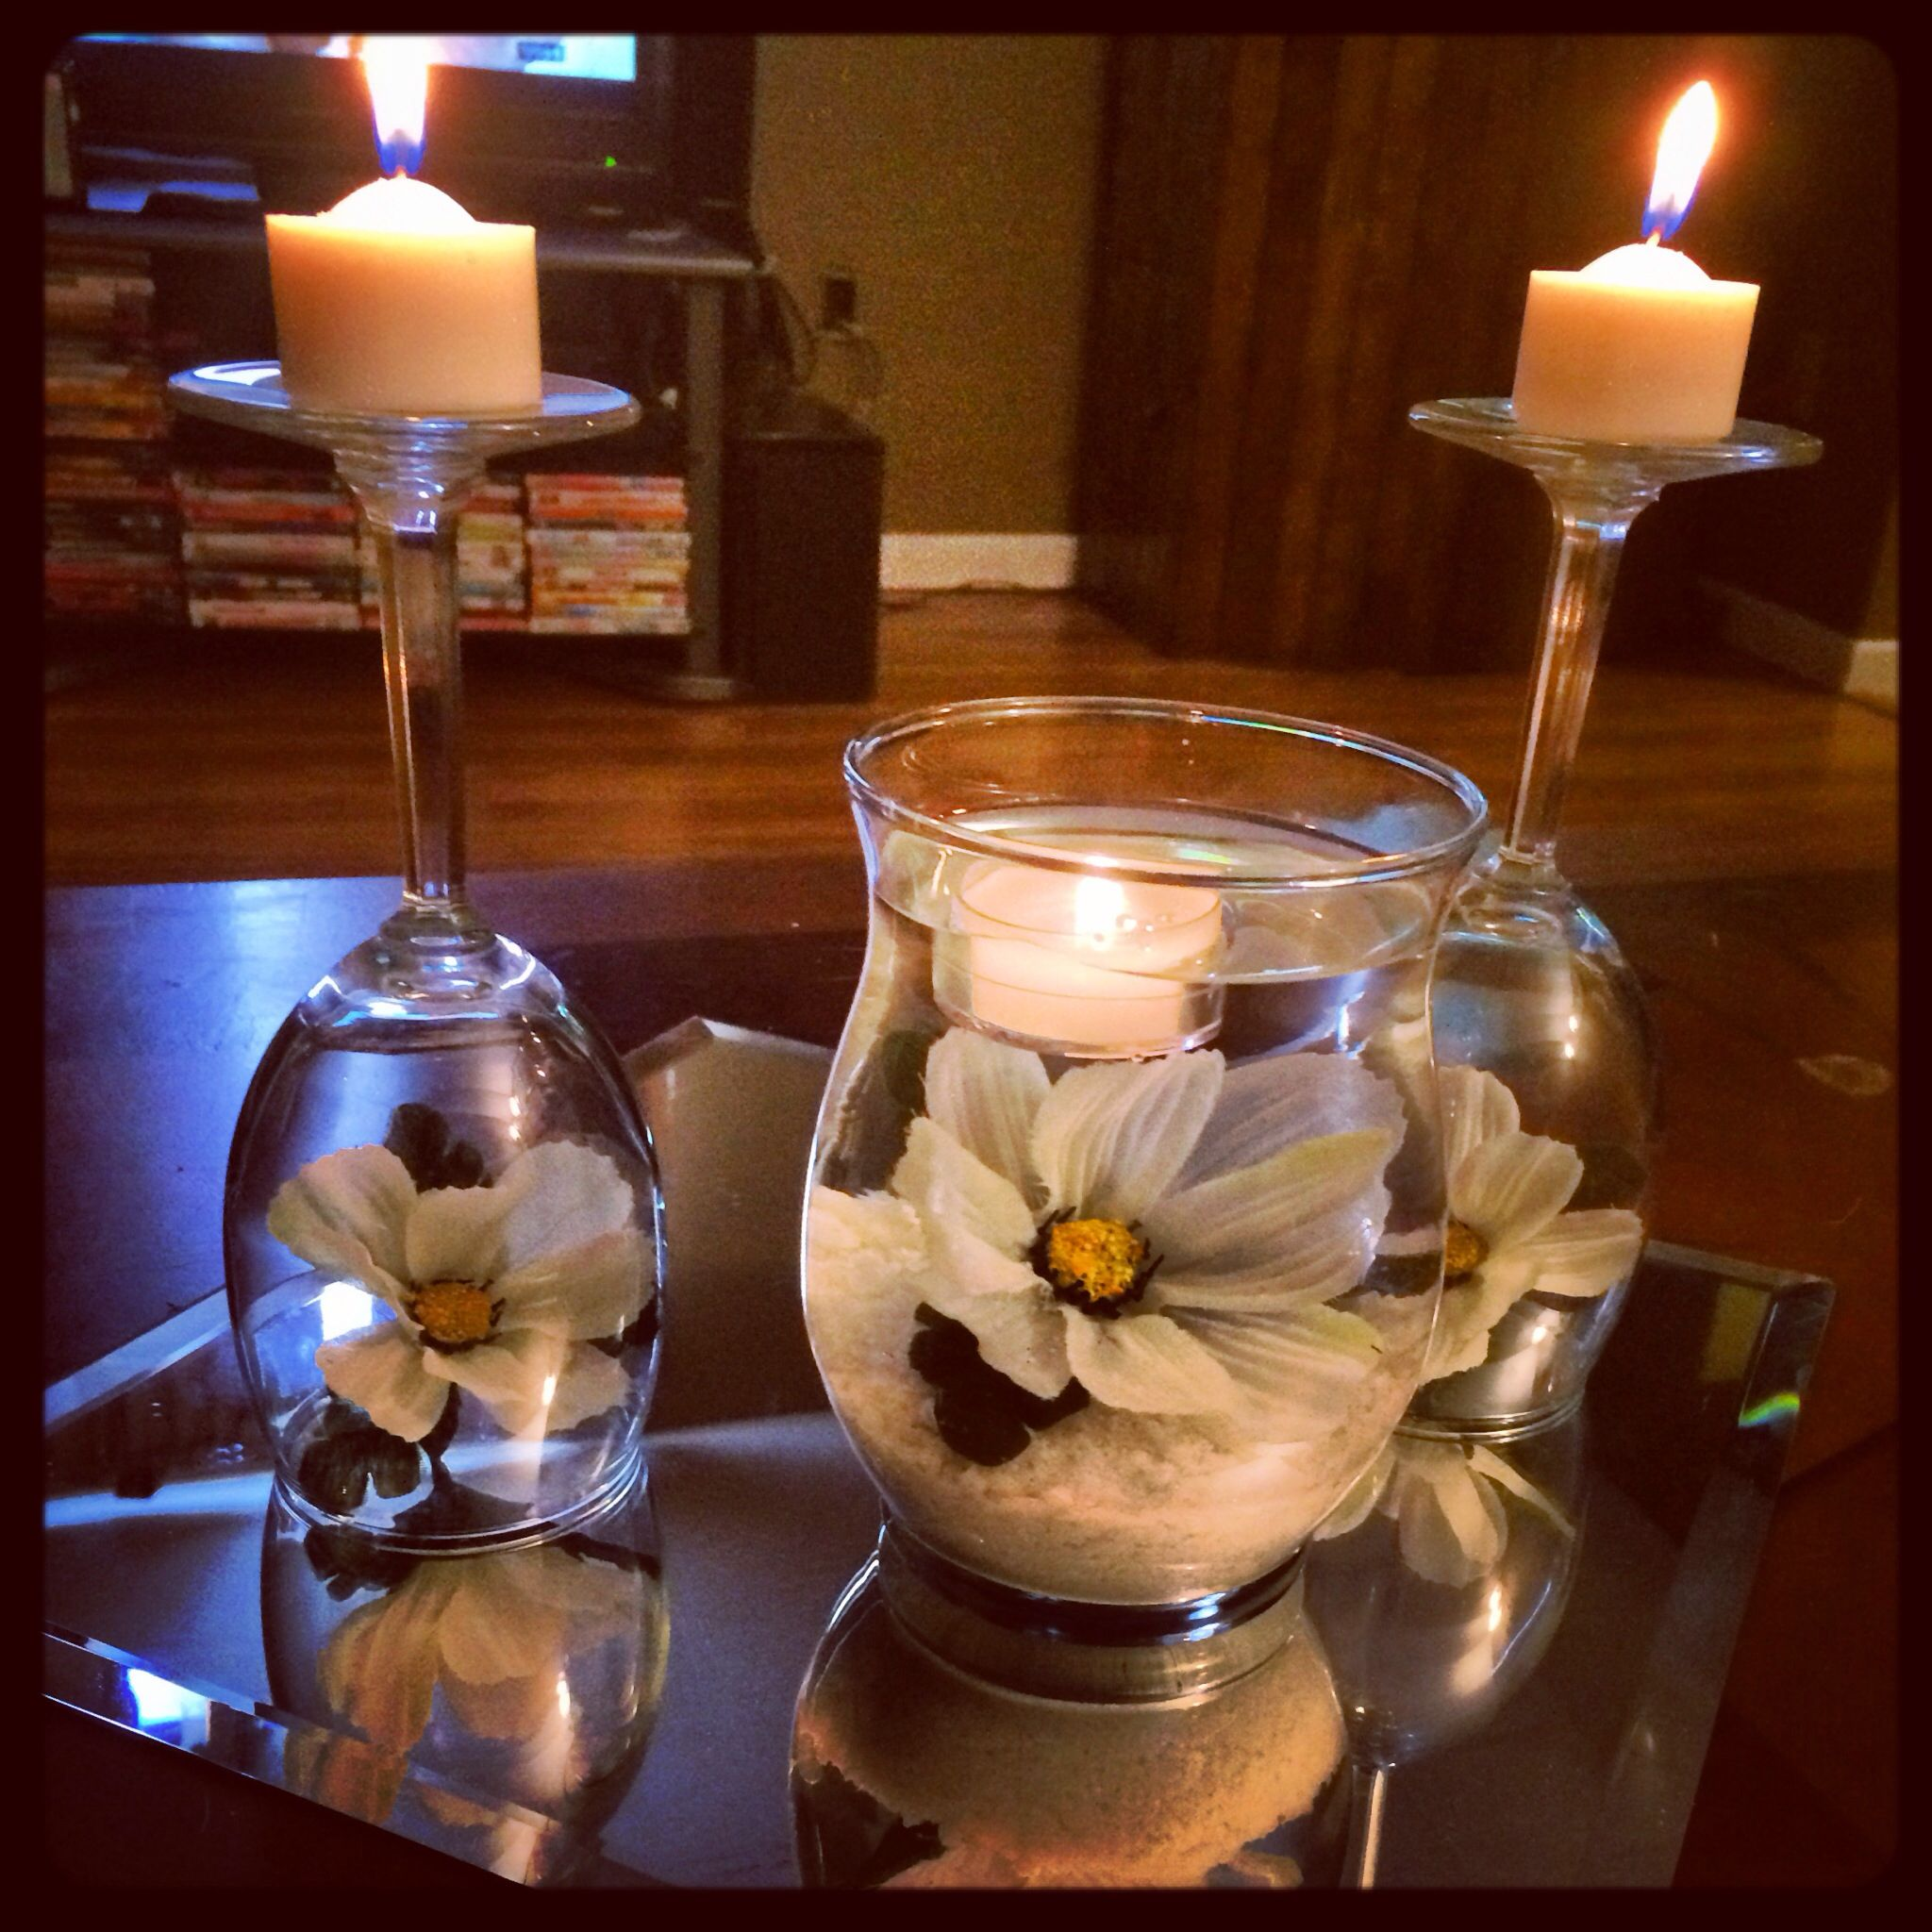 Coffee Table Spring Candle Centerpiece Wine Glasses, White Sand, Sunflowers,